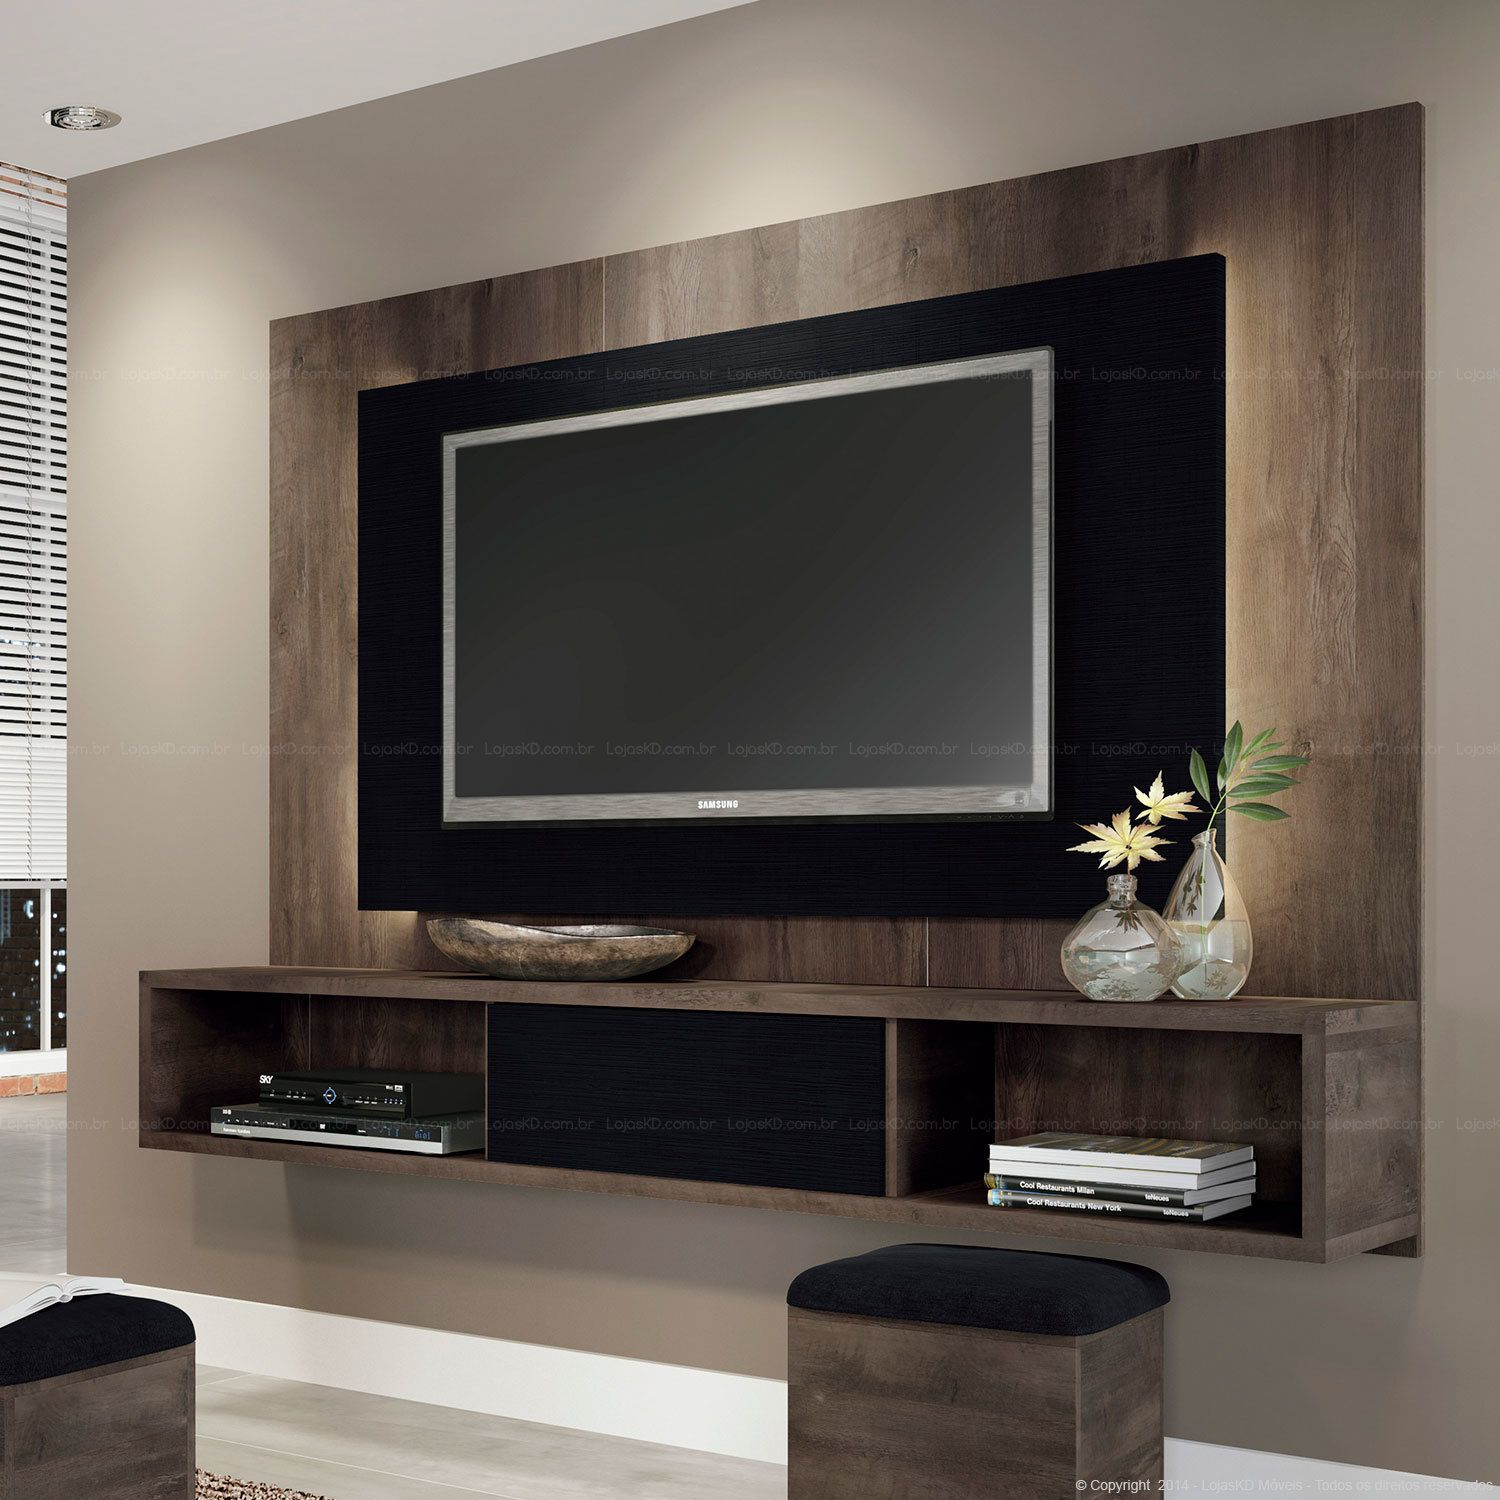 Mueble Tv Pared How Could Cords Be Hidden Interiores En 2019 Muebles Hogar Y